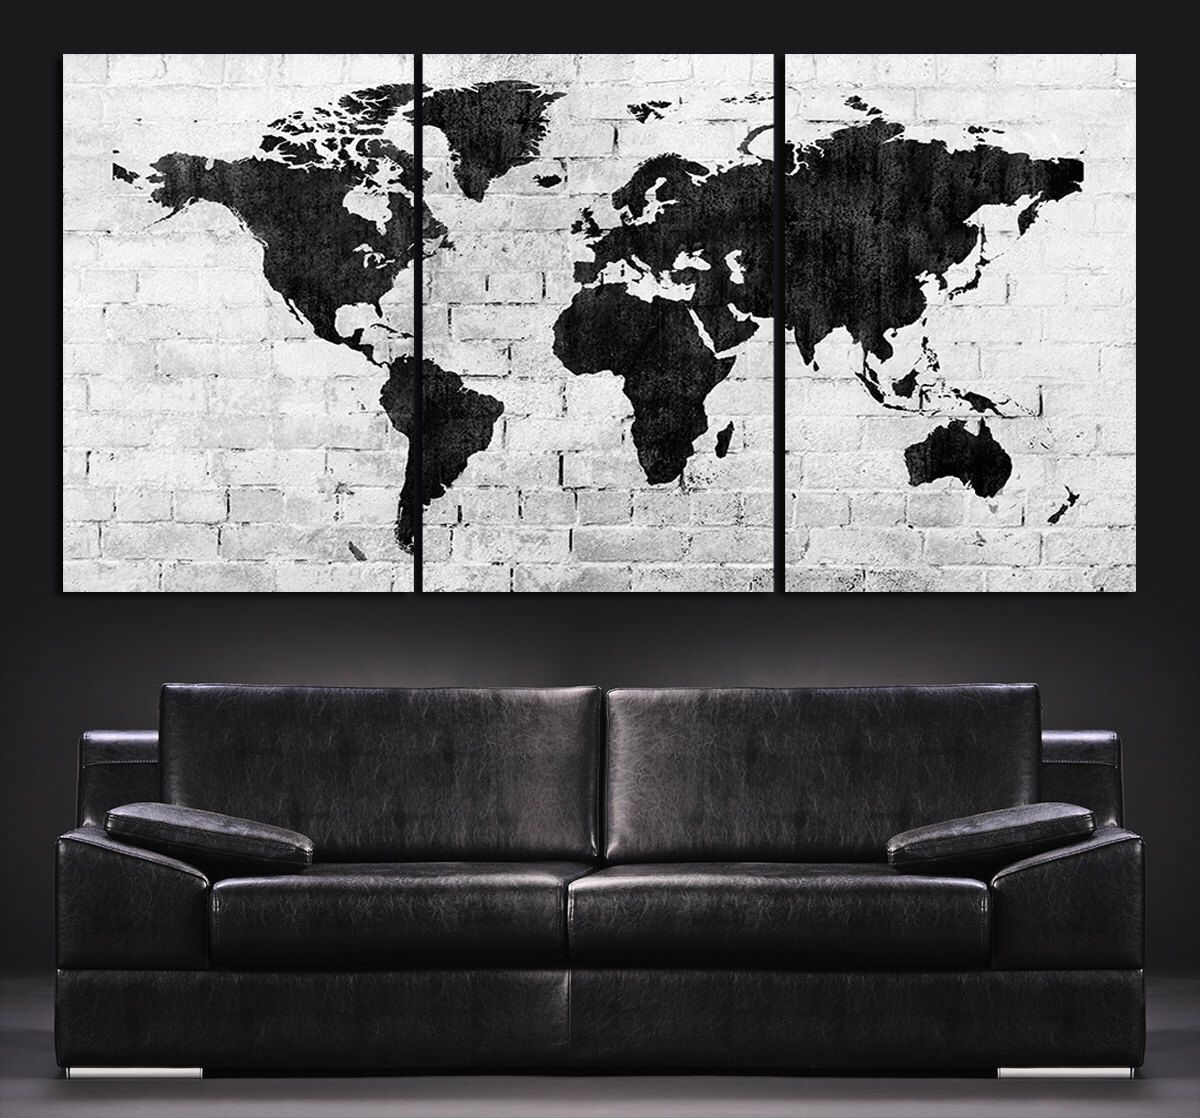 World map canvas etsy best of wall arts map wall art etsy wood us large wall art world map canvas print contemporary 3 panel triptych black and white large wall gumiabroncs Image collections